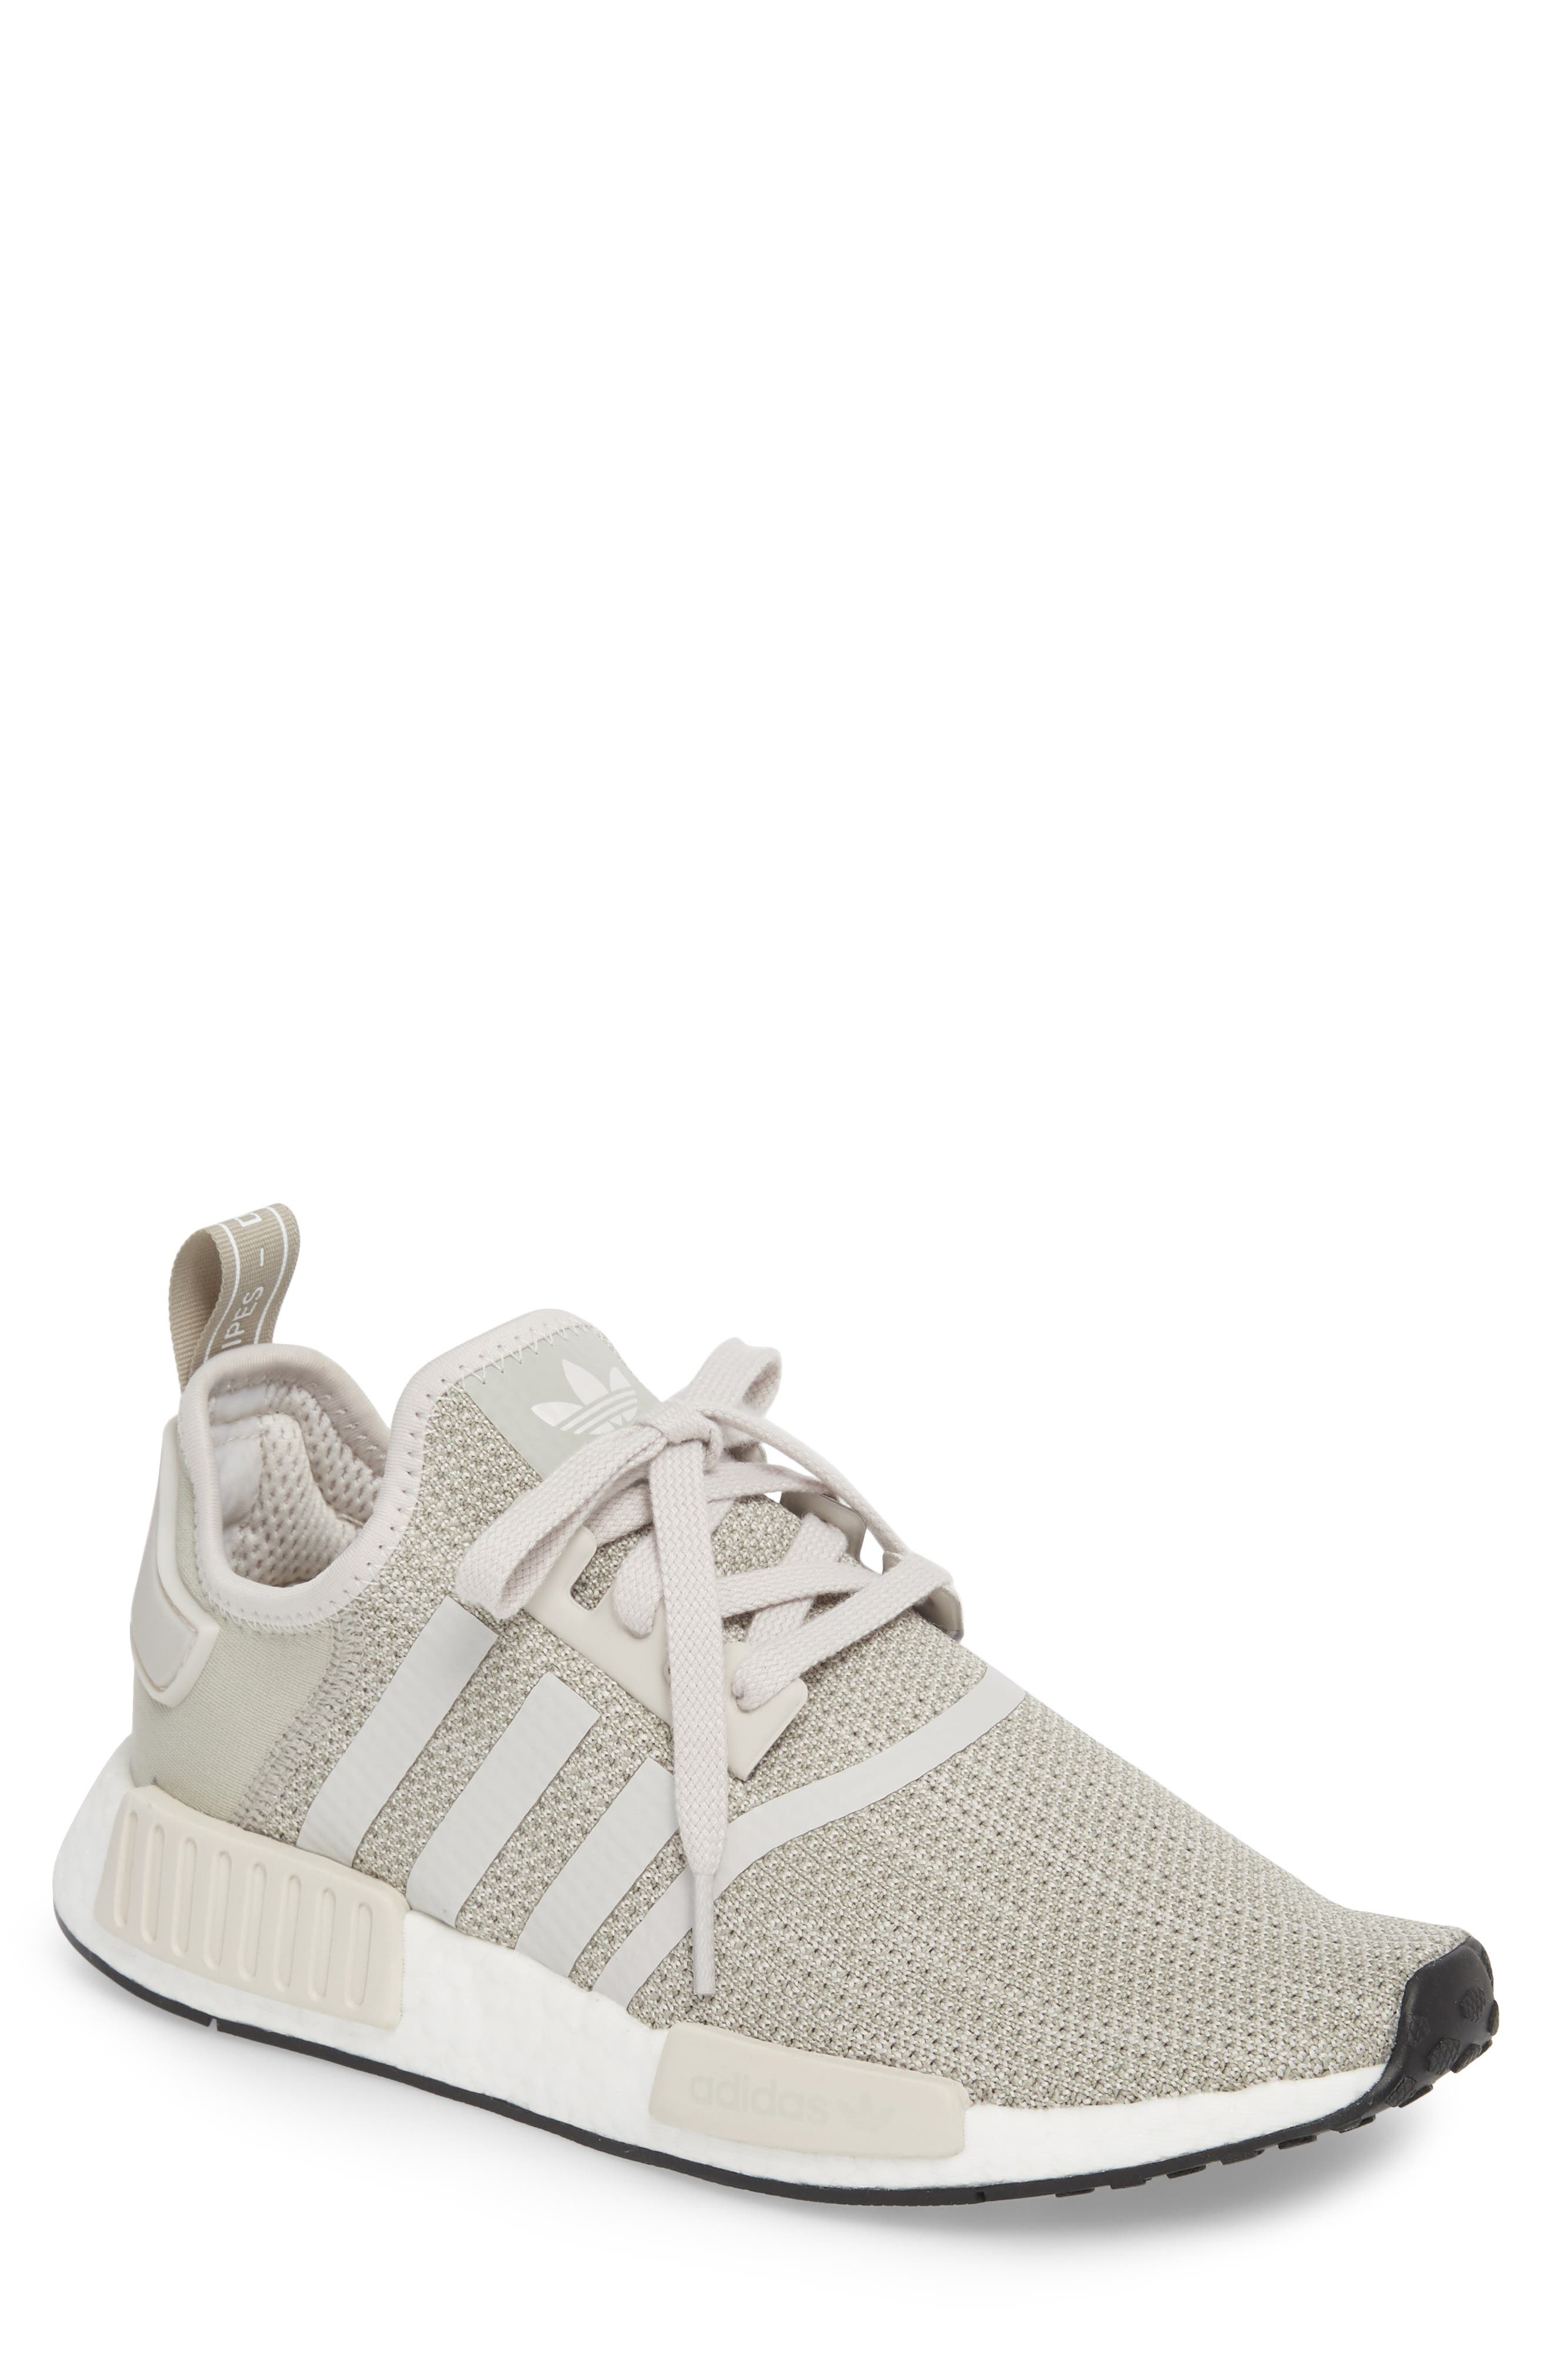 NMD_R1 Sneaker,                         Main,                         color, Raw Gold/ Tech Beige/ Black